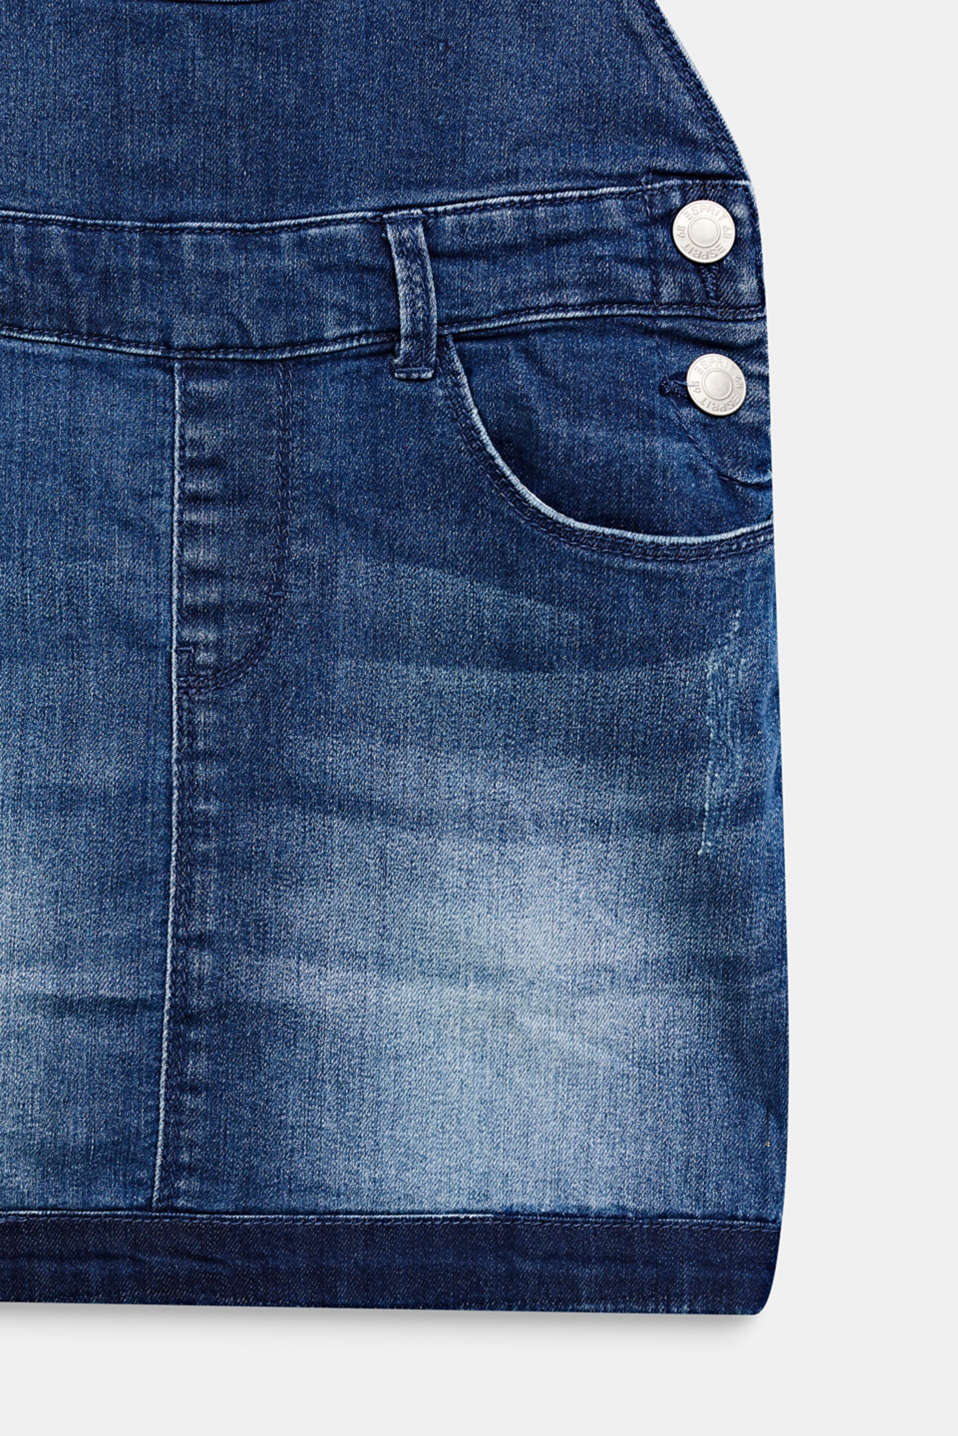 Stretch denim dungaree skirt, LCMEDIUM WASH DE, detail image number 3